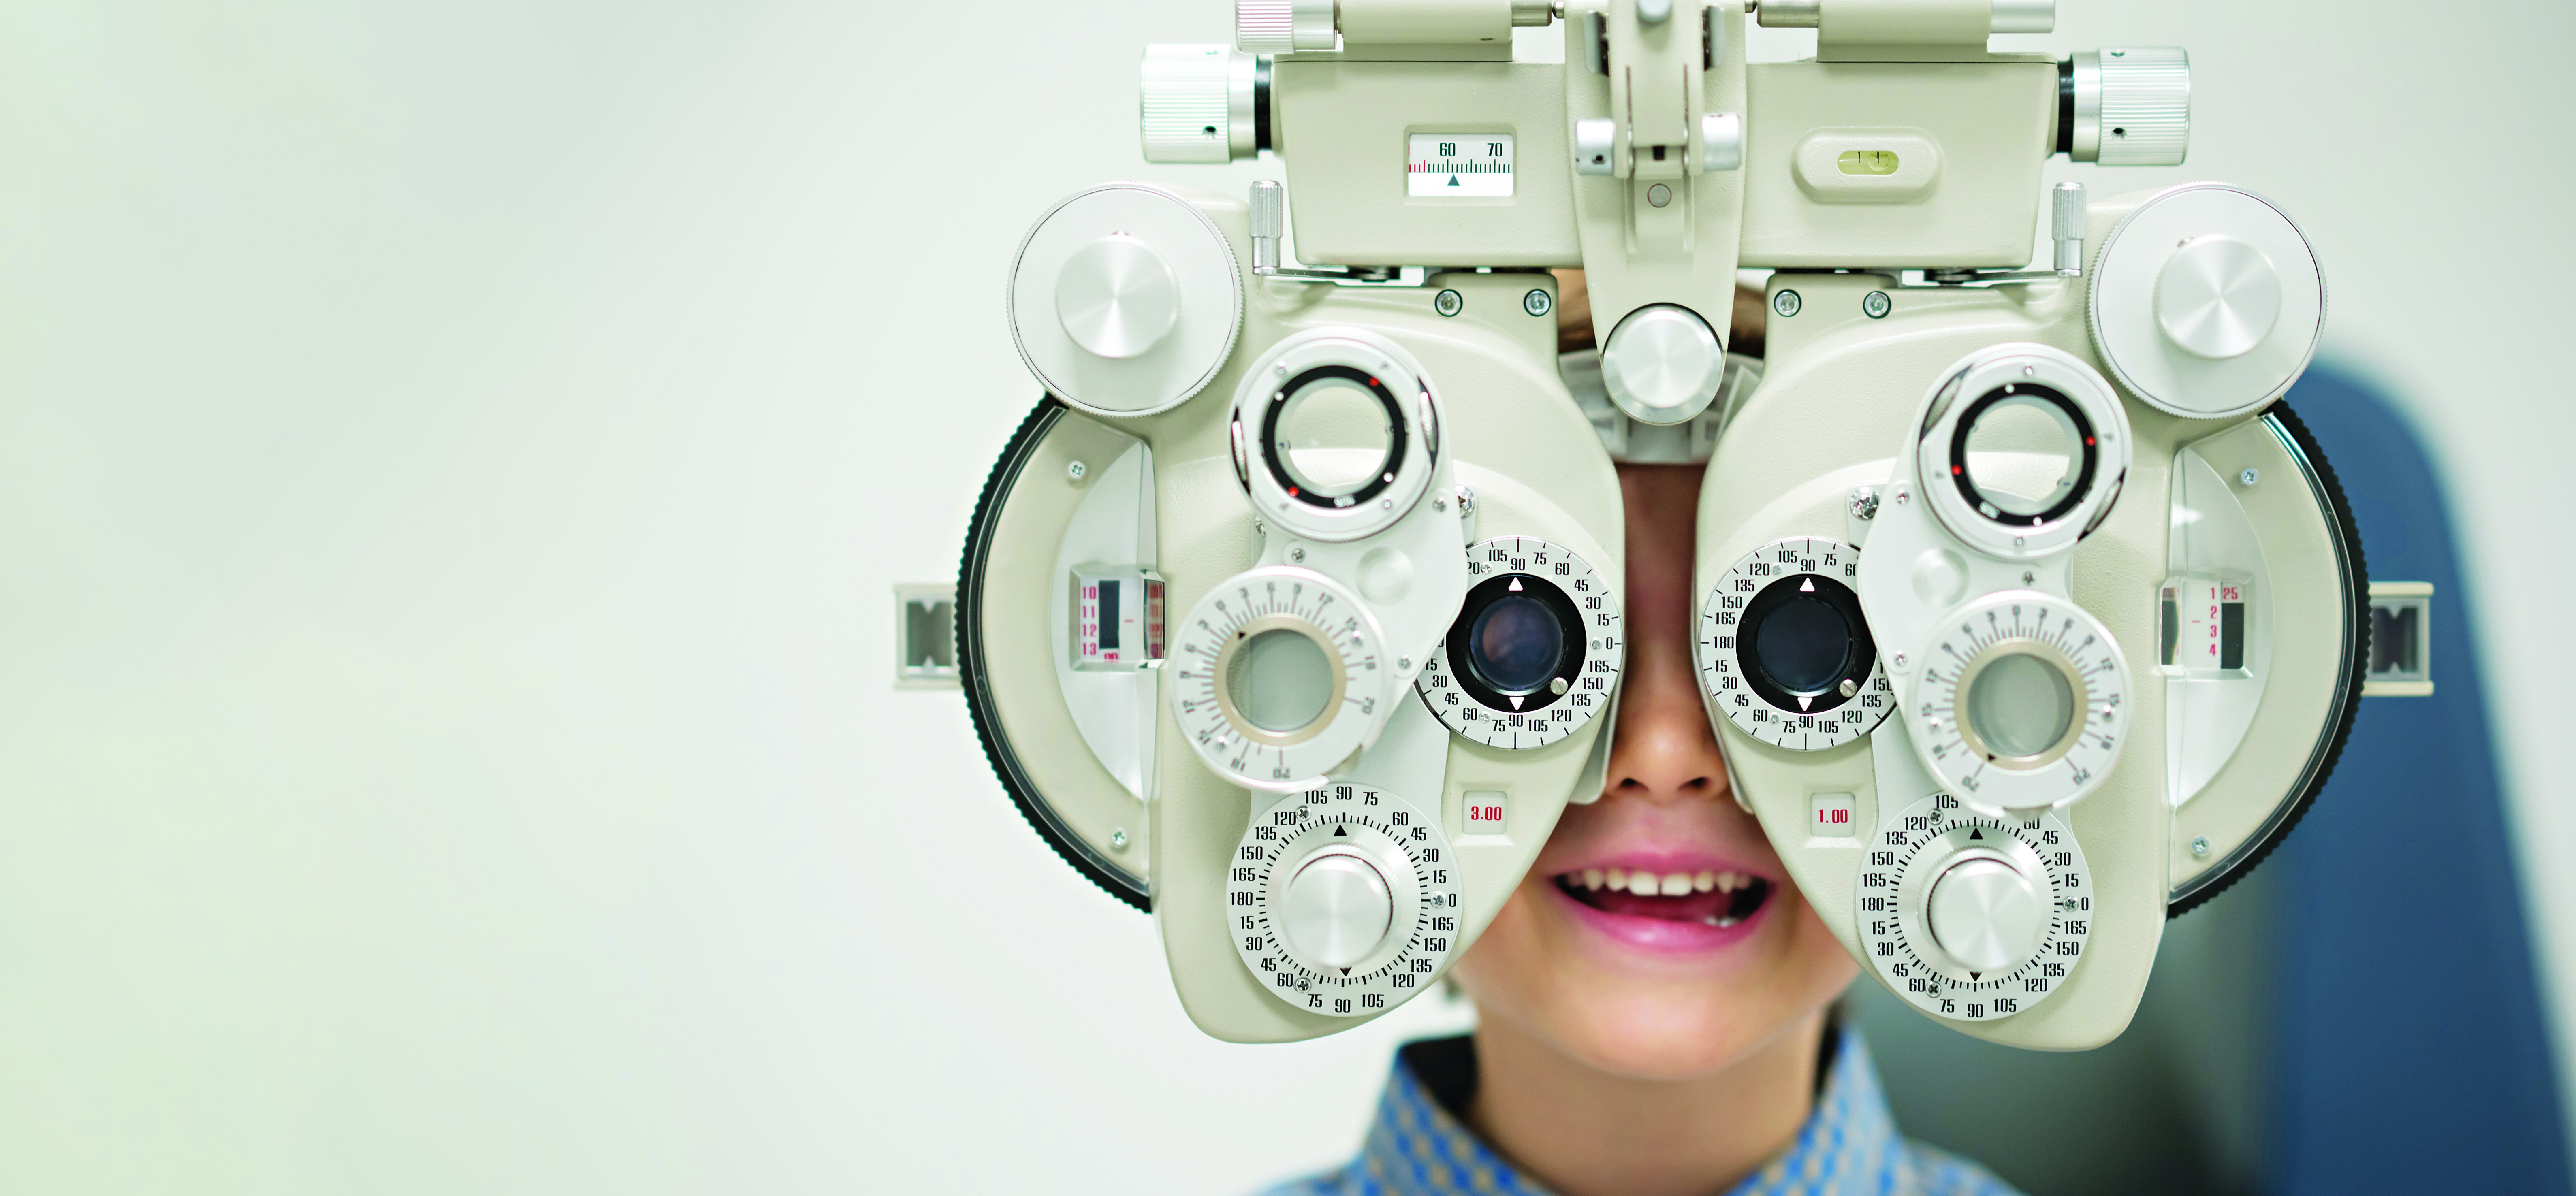 Young patient getting an eye exam at the optician on the phoropter â?? healthcare and medicine concepts (Foto: Getty Images)